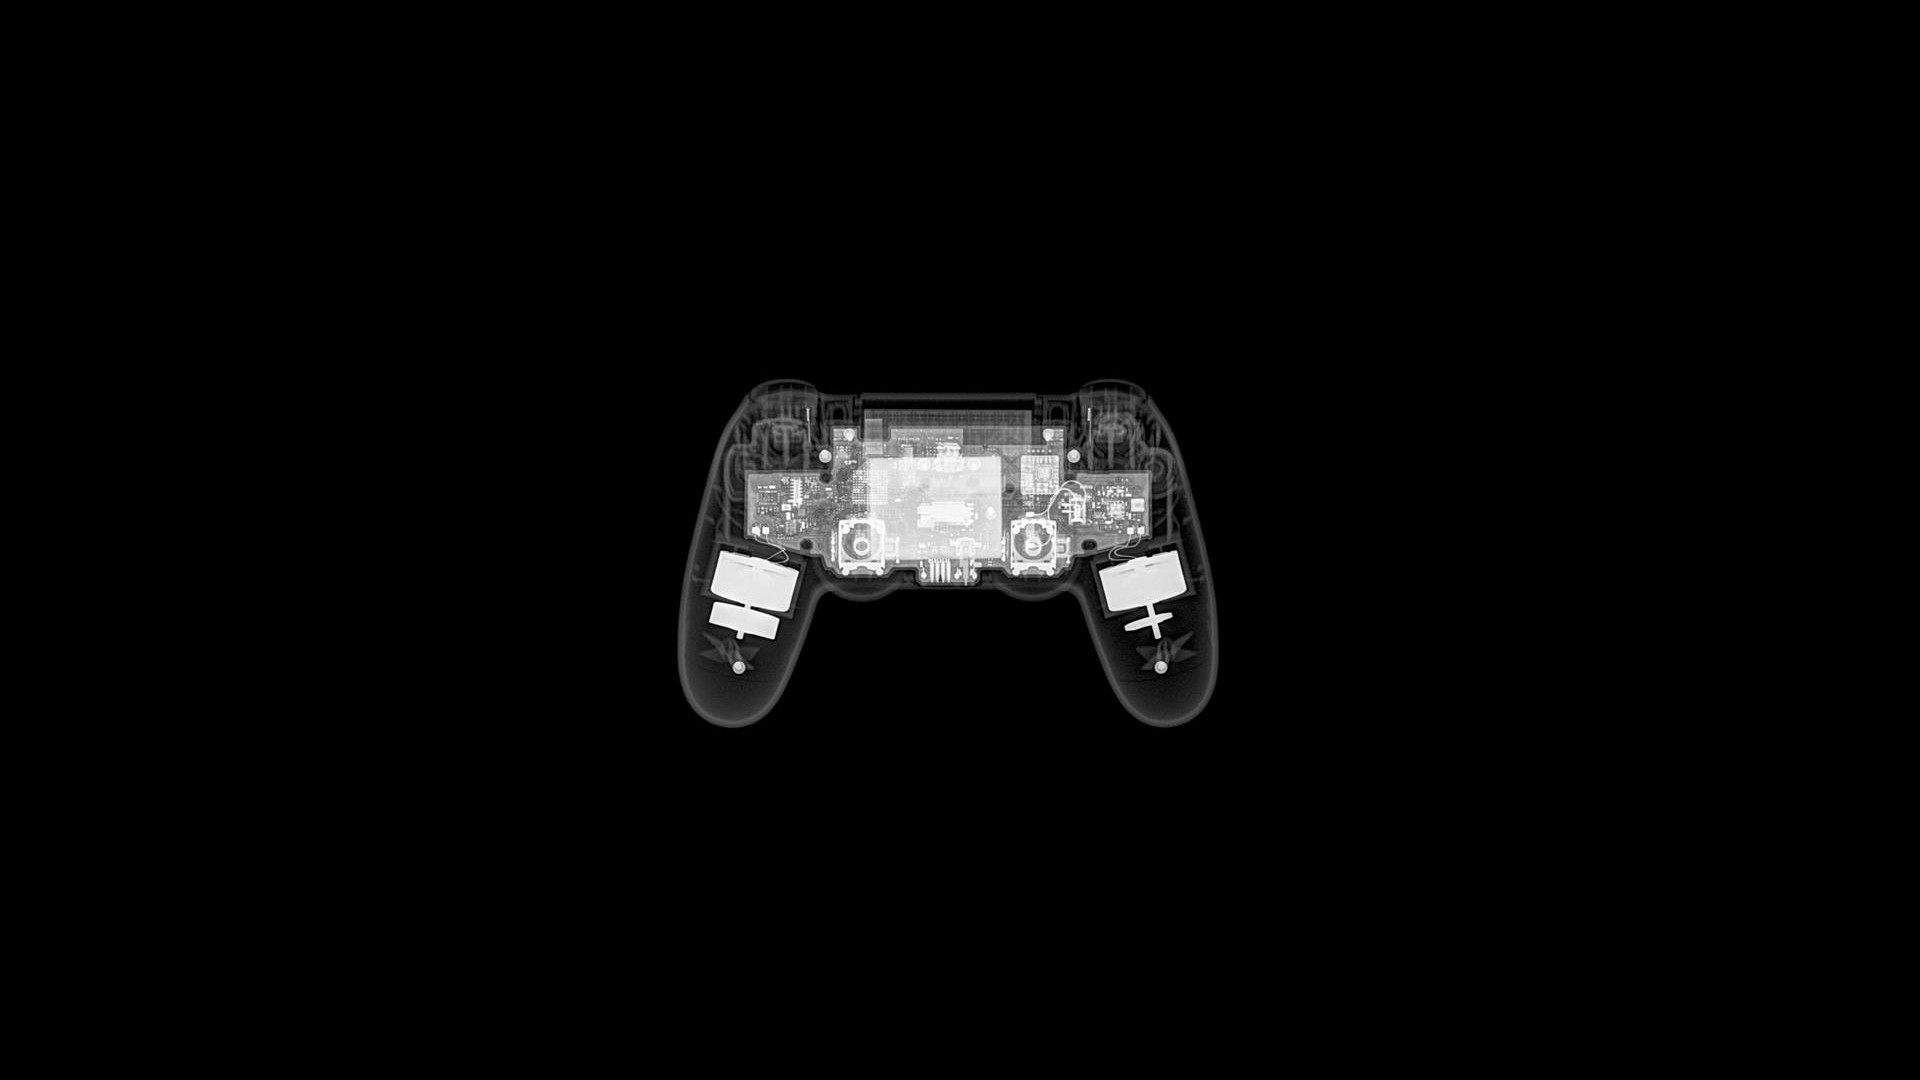 Res: 1920x1080, Gaming Controllers Wallpaper Widescreen For Free Wallpaper